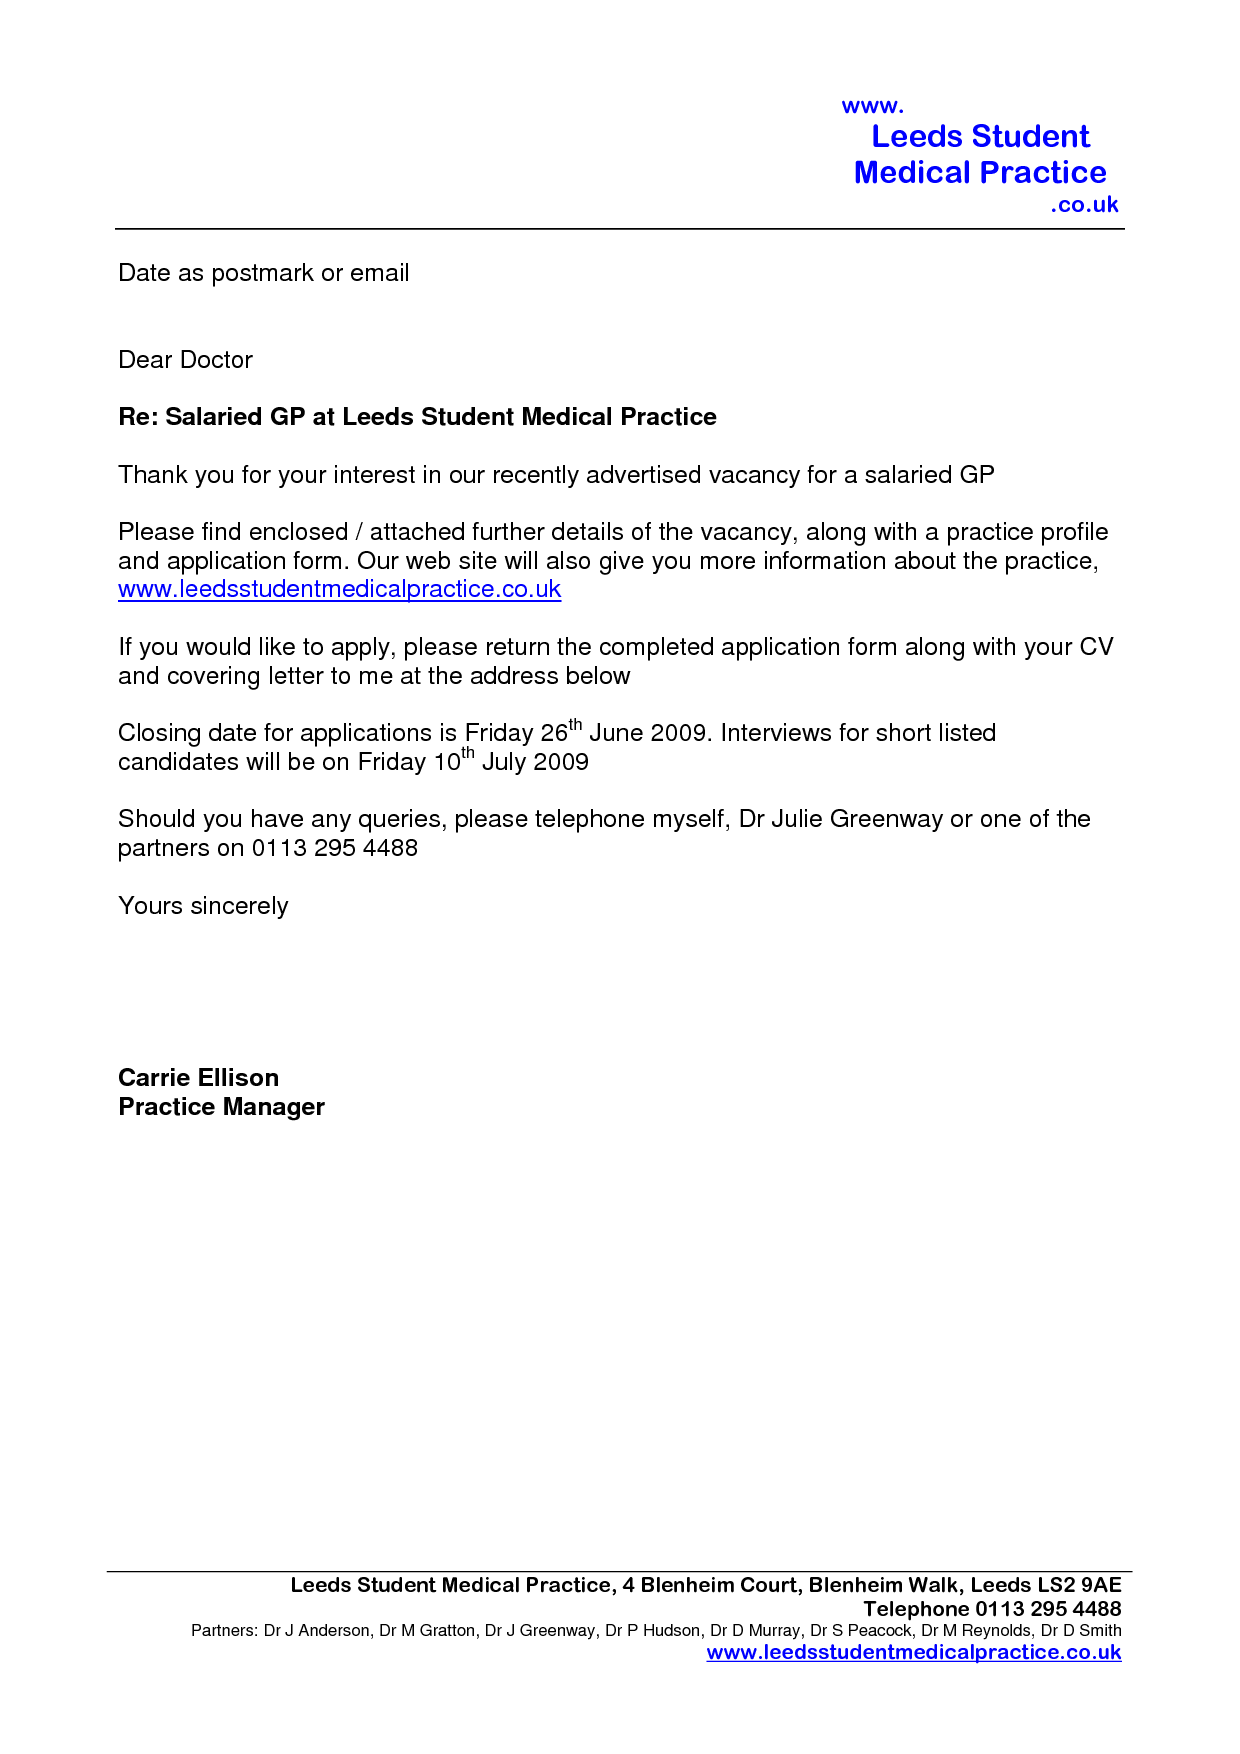 Cover Letter Email Template Uk - Online Cover Letter Library